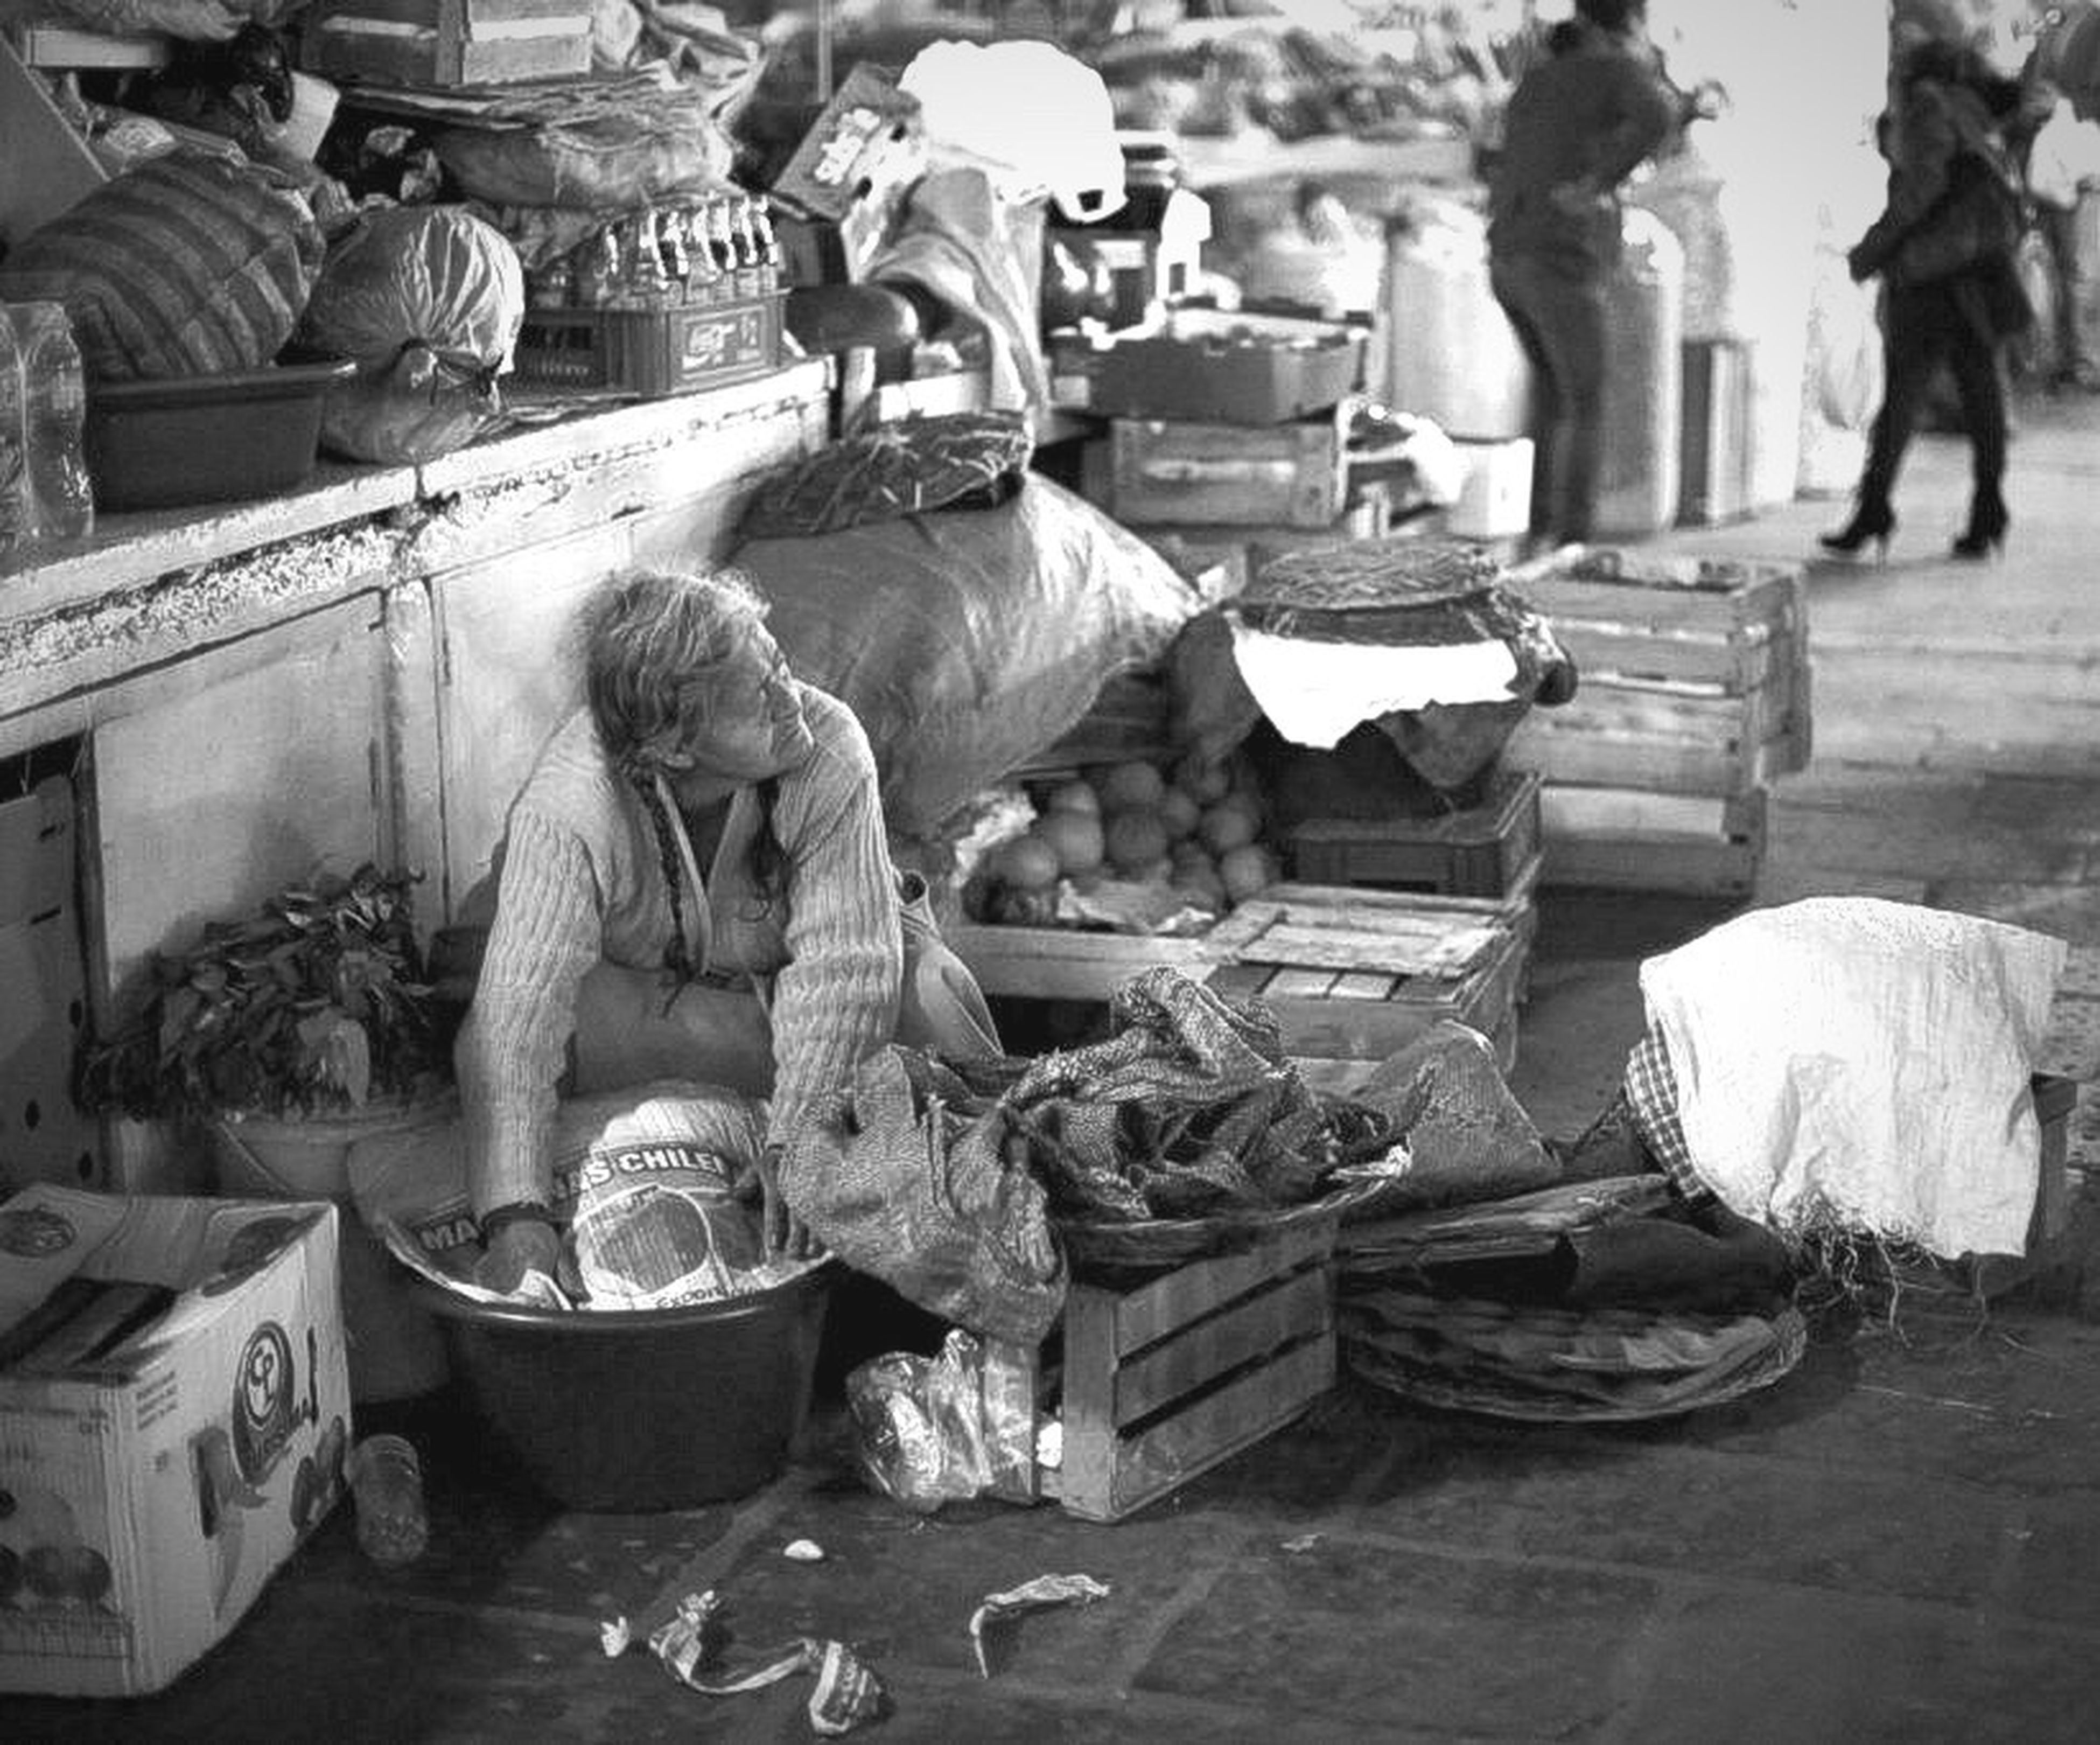 men, art and craft, for sale, large group of objects, temple - building, selling, place of worship, freshness, person, variation, retail, market vendor, street market, arrangement, outdoors, in front of, messy, day, choice, creativity